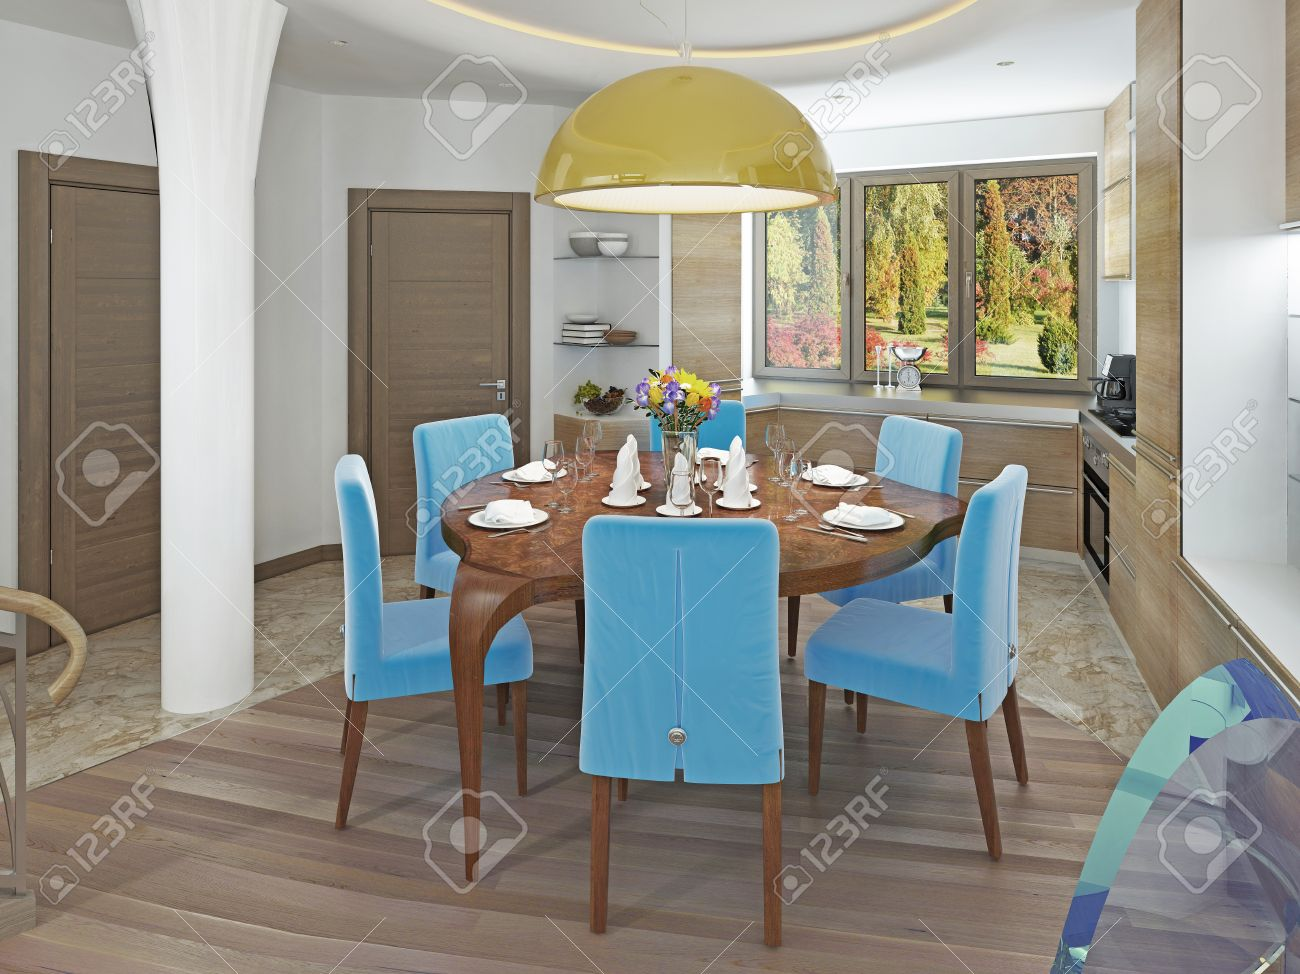 60565389 Modern dining room with kitchen in a trendy style kitsch Round dining table with comfortable blue ch Stock Photo